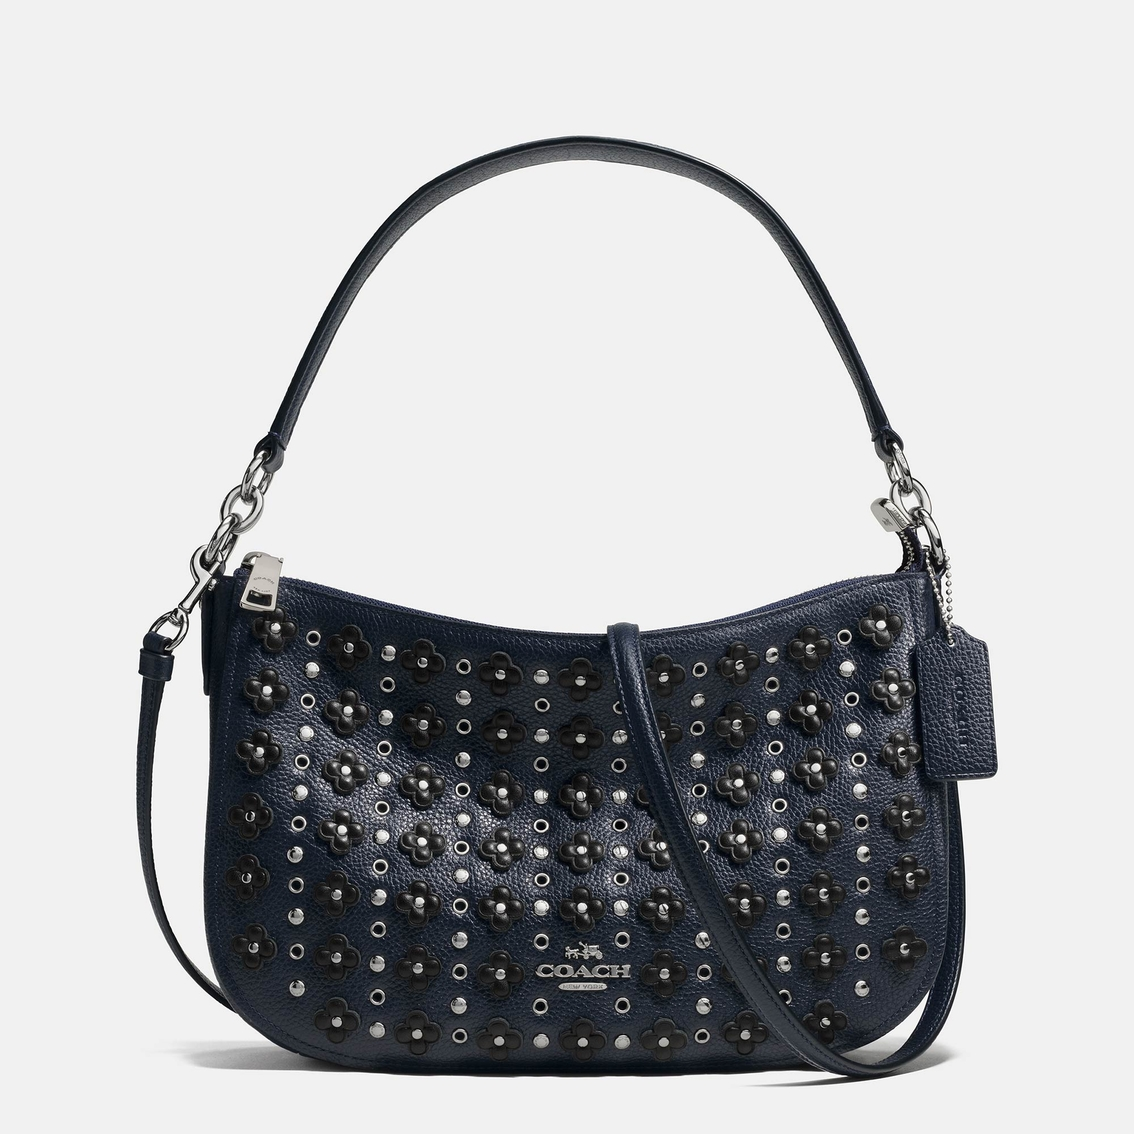 Coach Chelsea Crossbody In Floral Rivets Leather | Crossbody Bags | Handbags U0026 Accessories ...